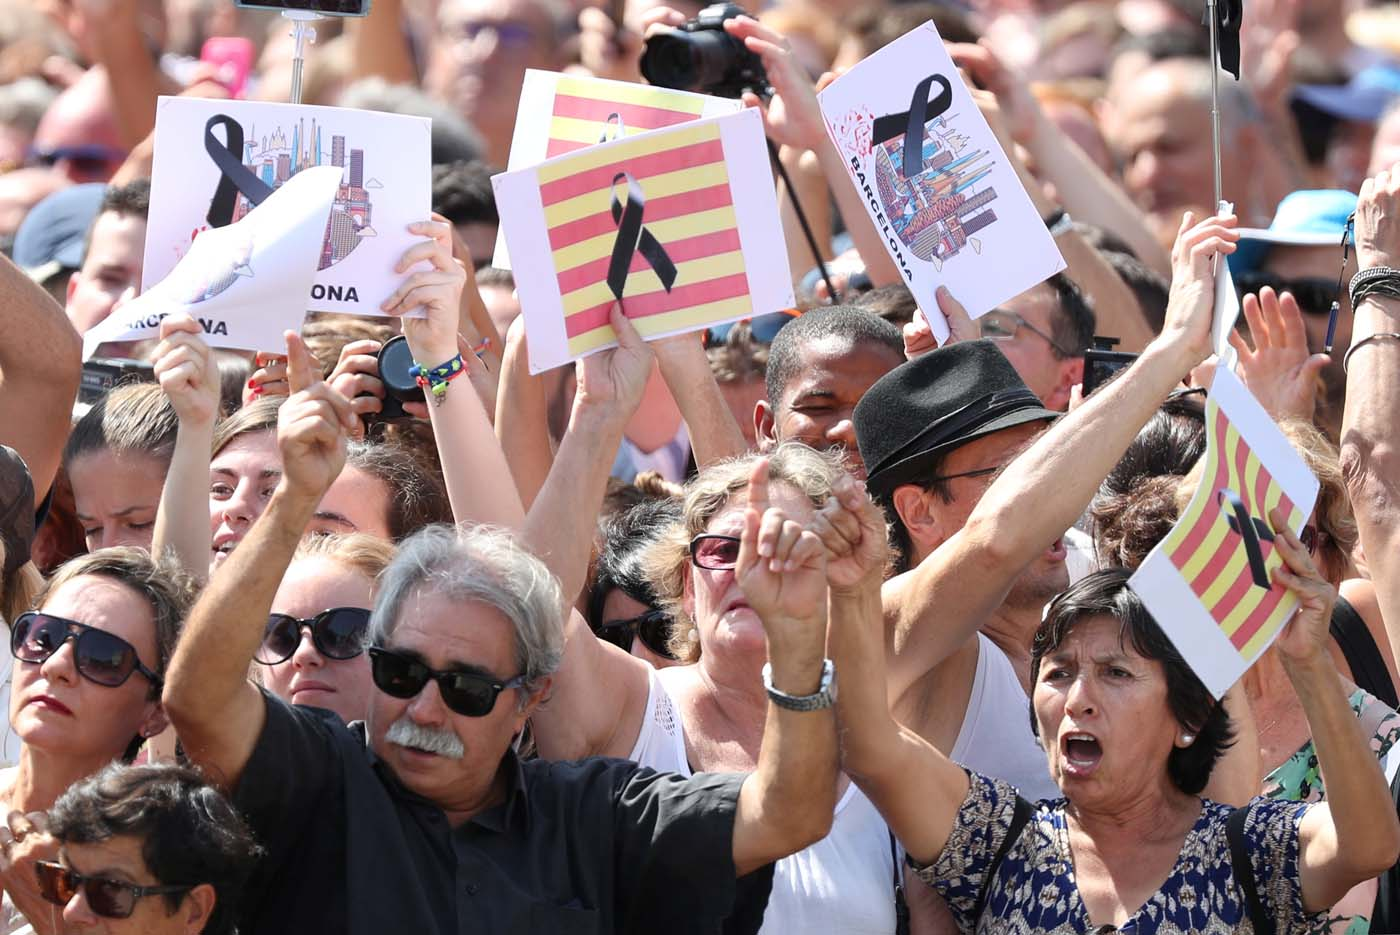 People hold banners as they observe a minute of silence in Placa de Catalunya, a day after a van crashed into pedestrians at Las Ramblas in Barcelona, Spain August 18, 2017. REUTERS/Sergio Perez